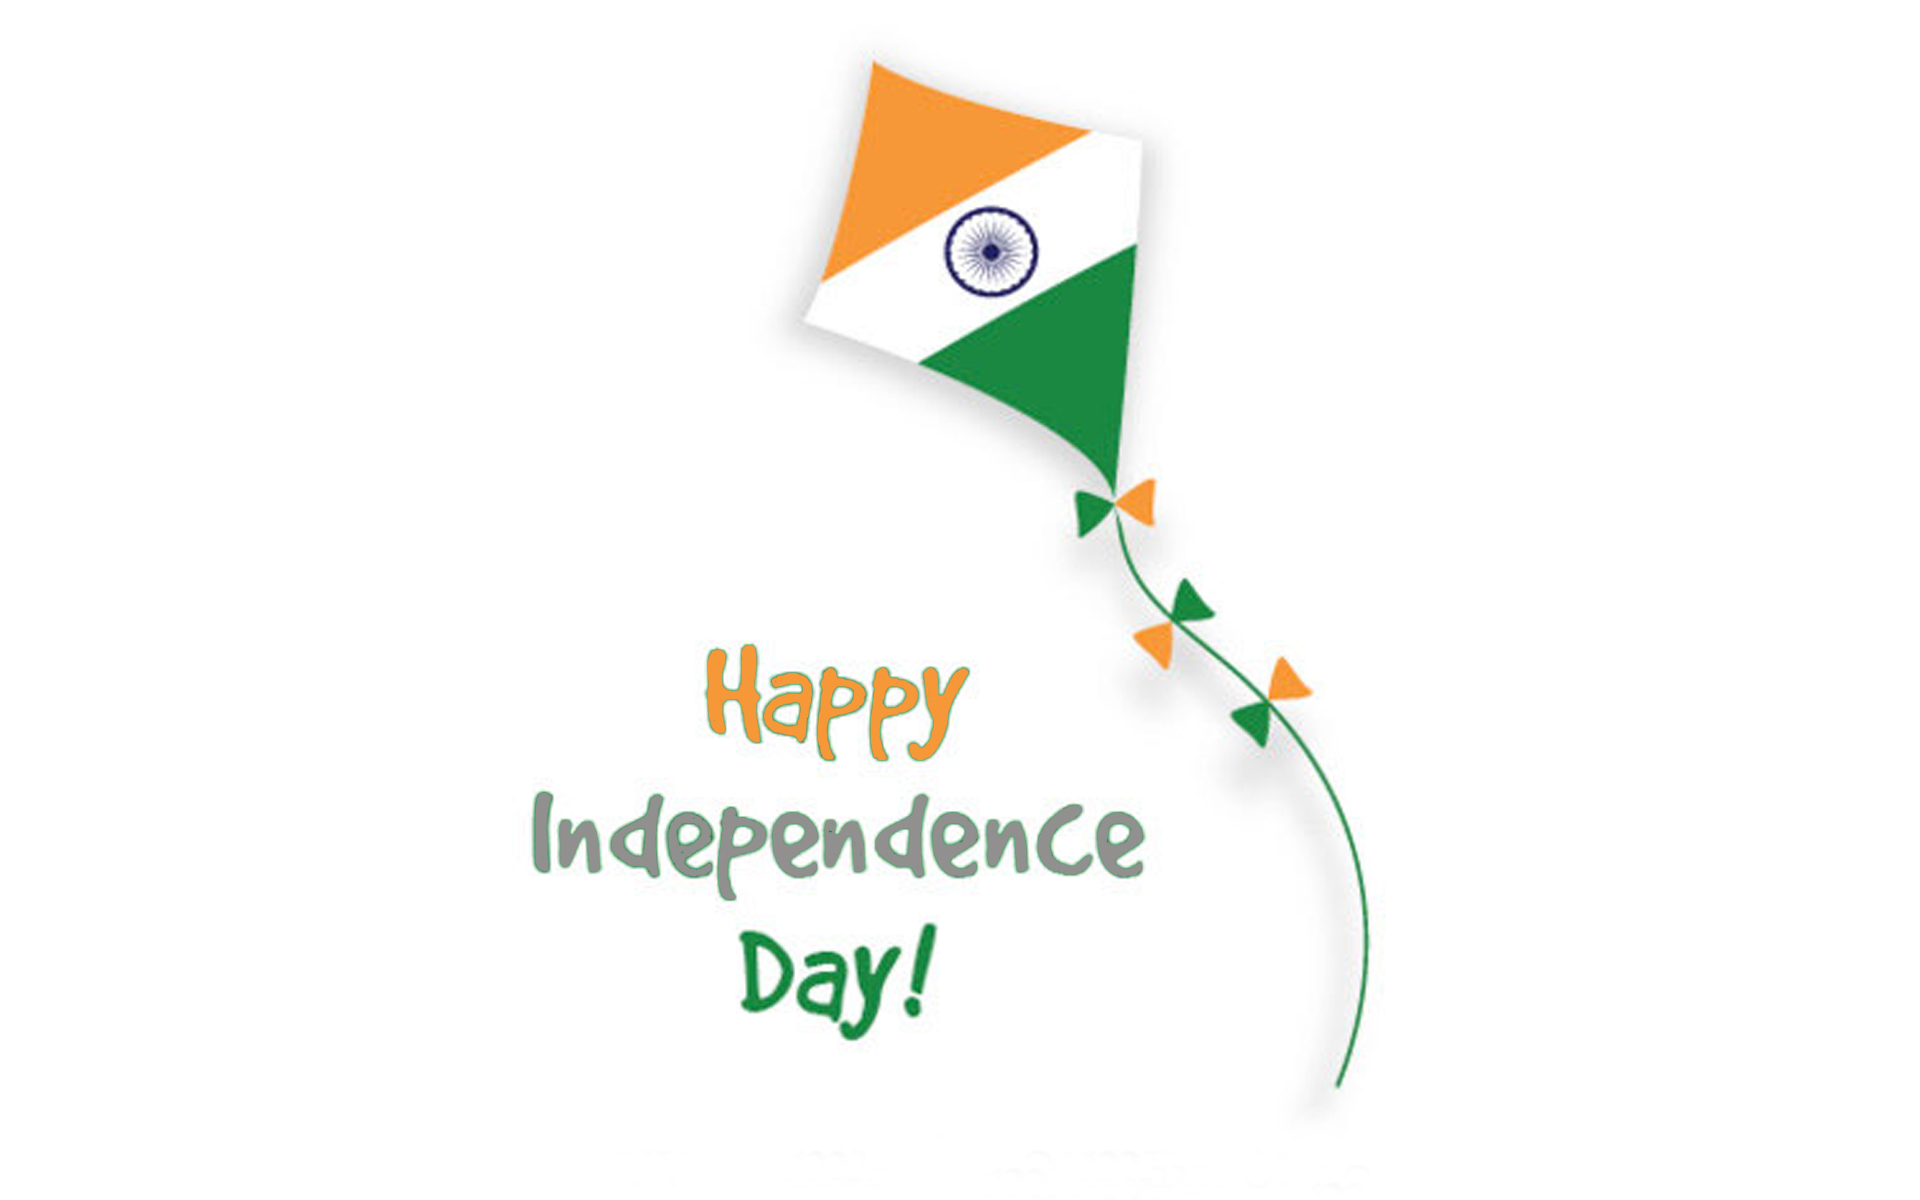 Independence-Day-2015-HD-Wallpaper-2015-jay-hind